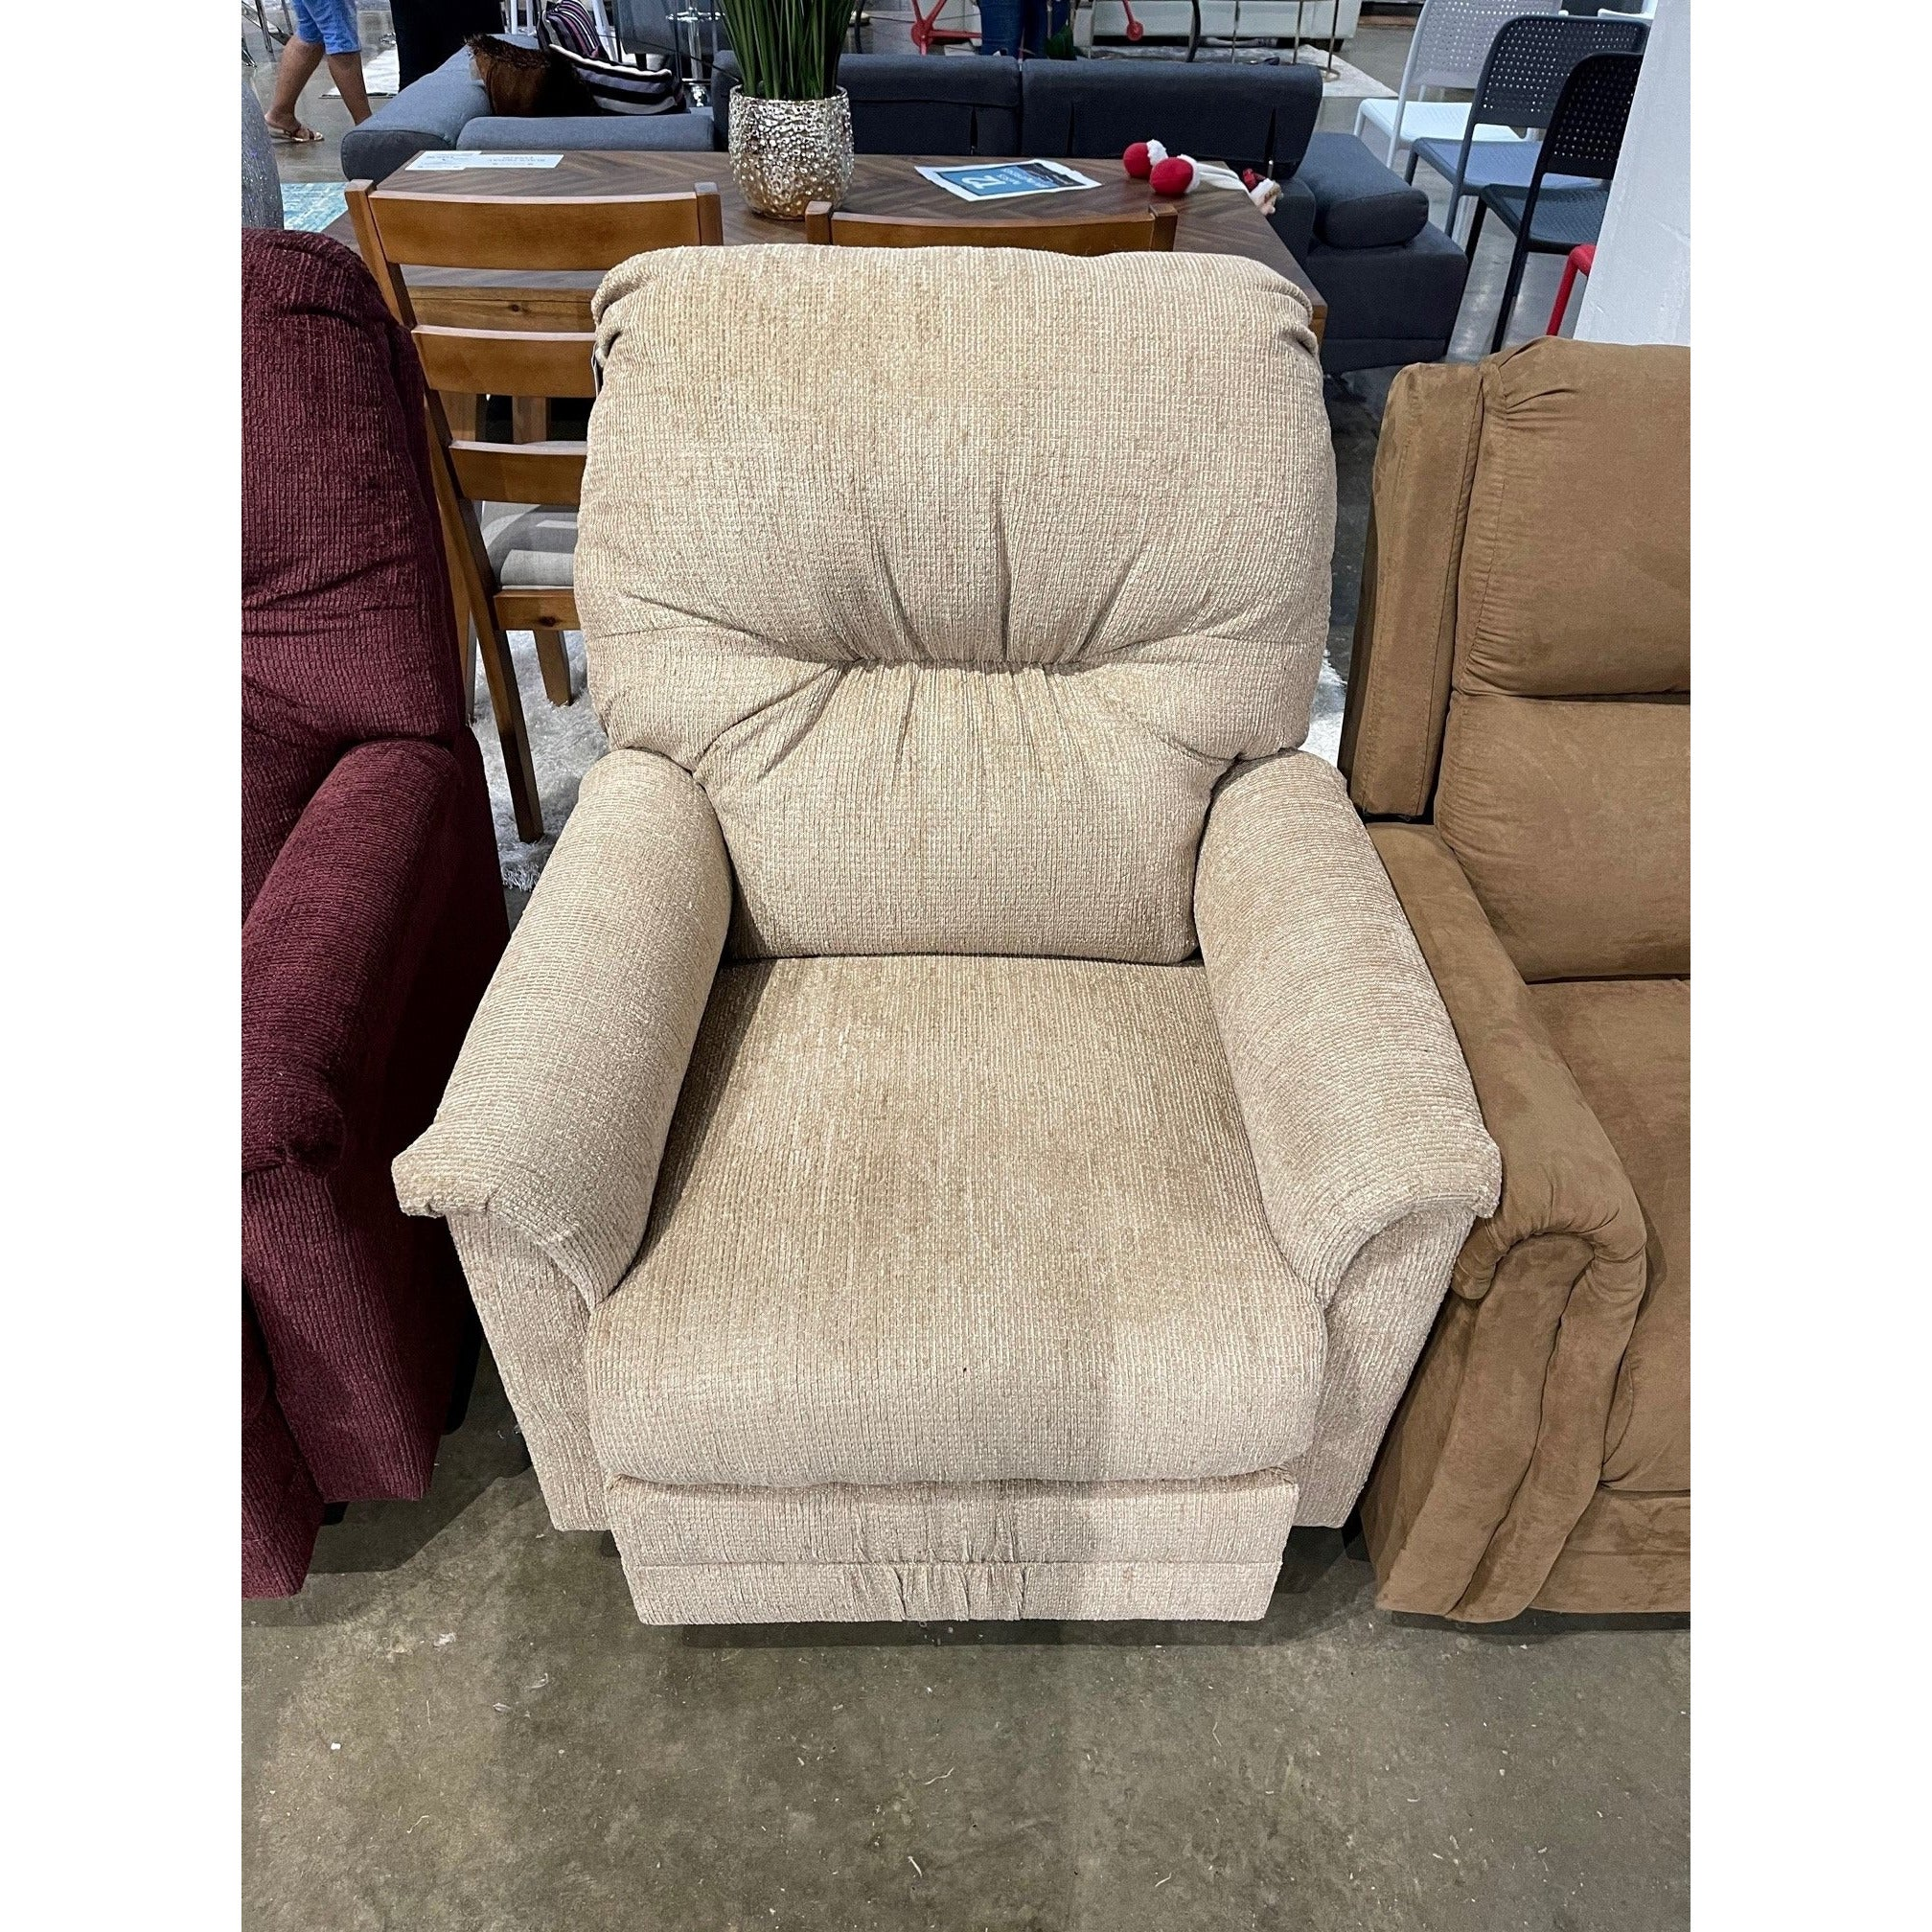 RECLINER - SOFT COLLECTON